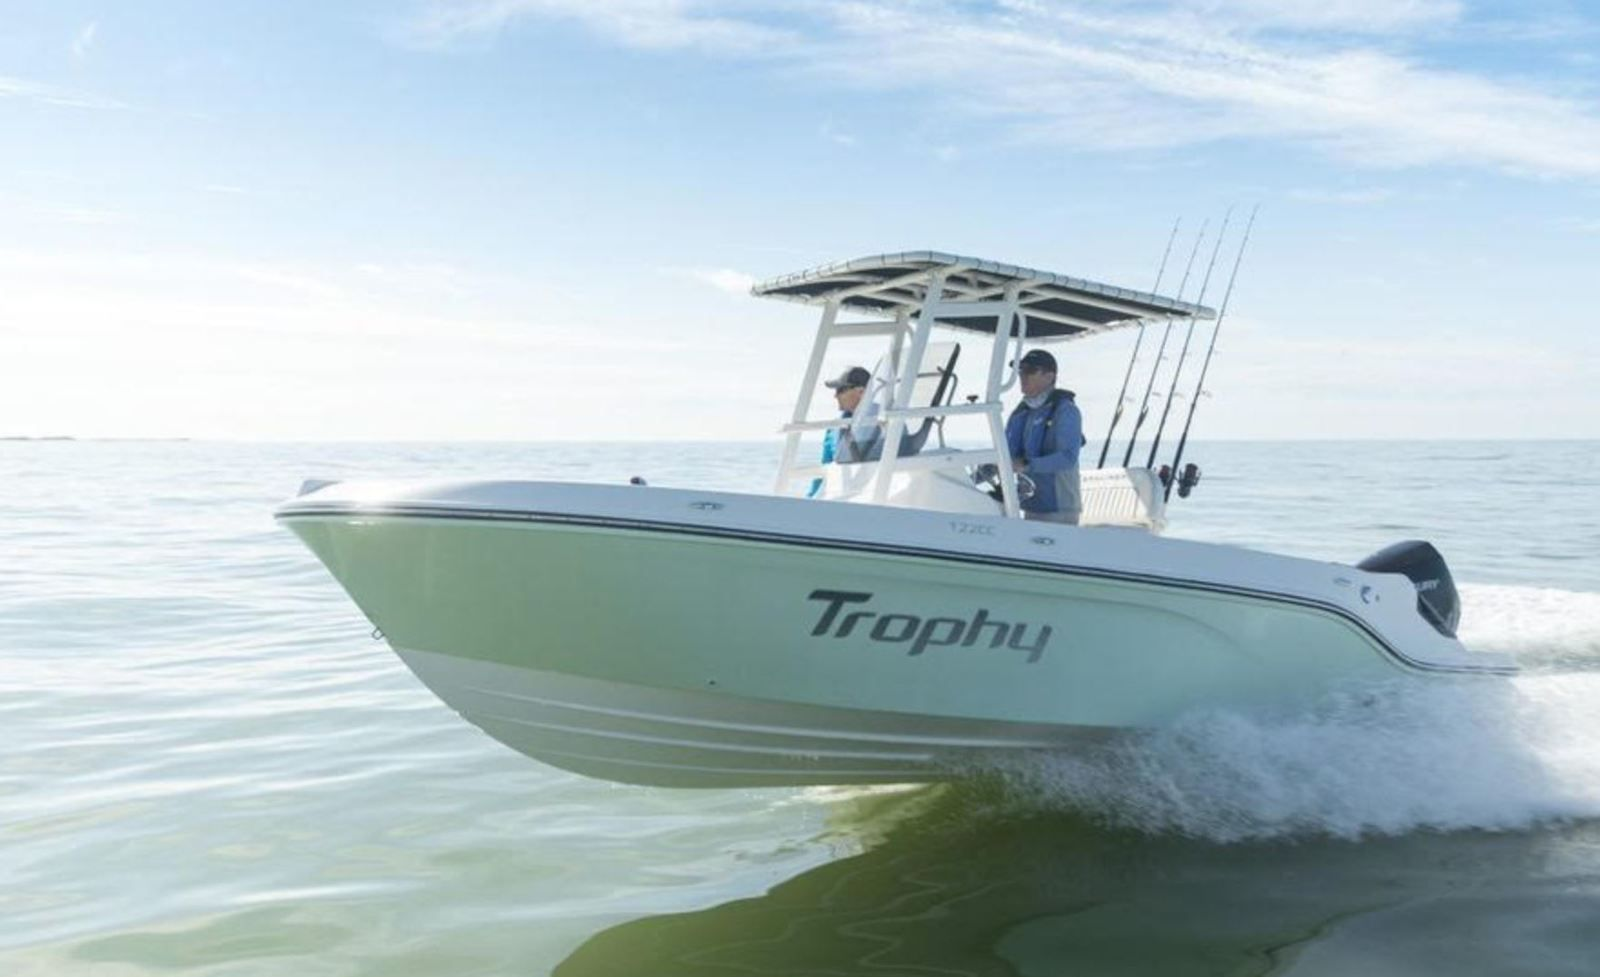 Scoop - Bayliner to debut new Trophy Series center consoles at MIBS!